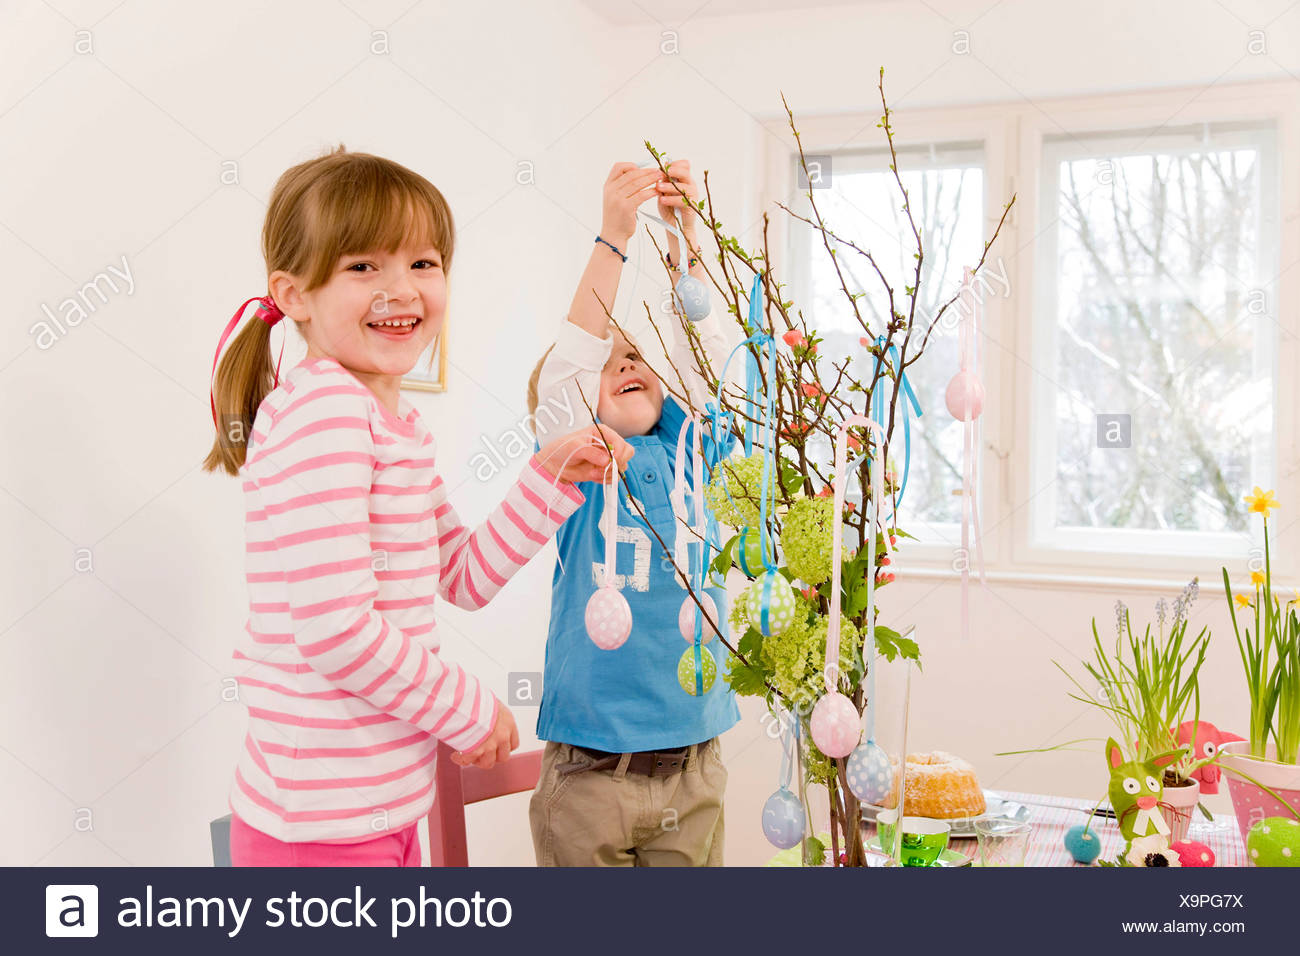 girl and boy decorate easter table - Stock Image